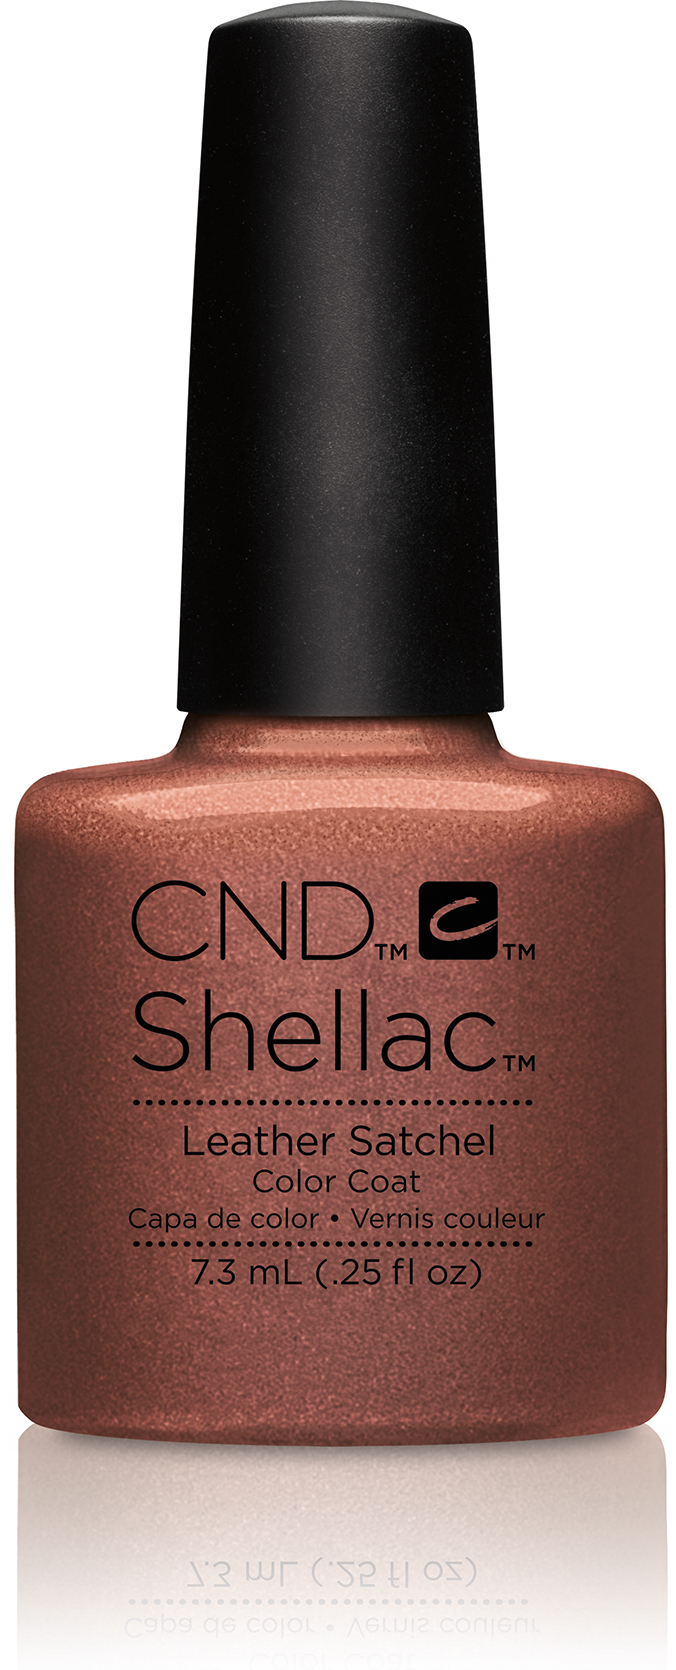 CND Shellac Craft Culture Collection Leather Satchel